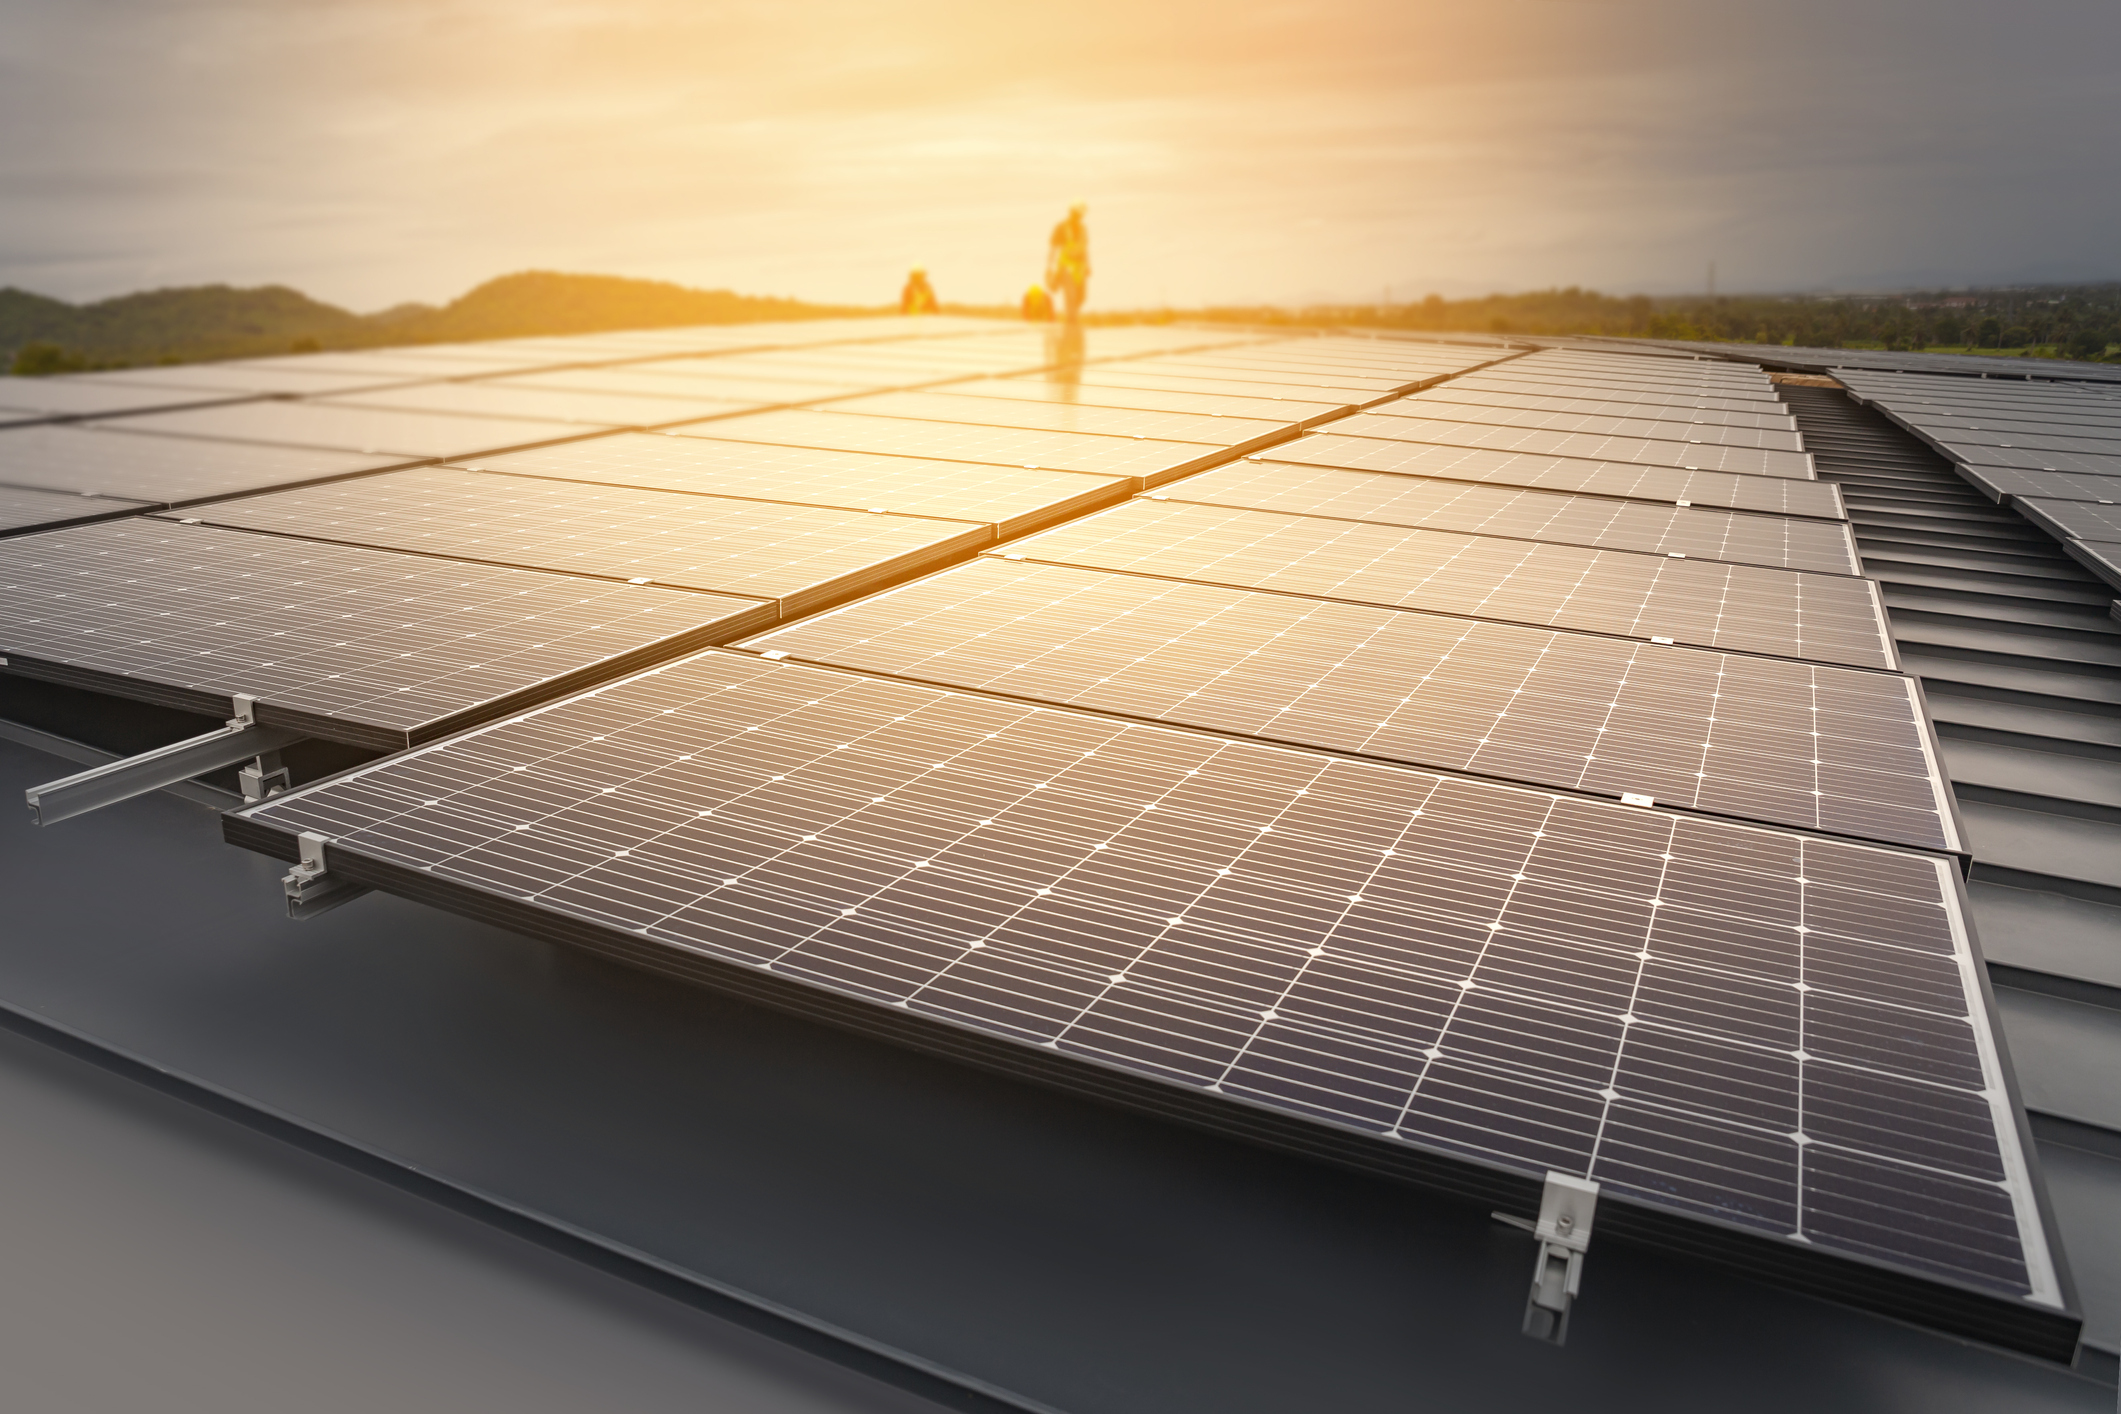 Connecticut Solar for Commercial Businesses: A look at 2021 incentives and regulatory policy